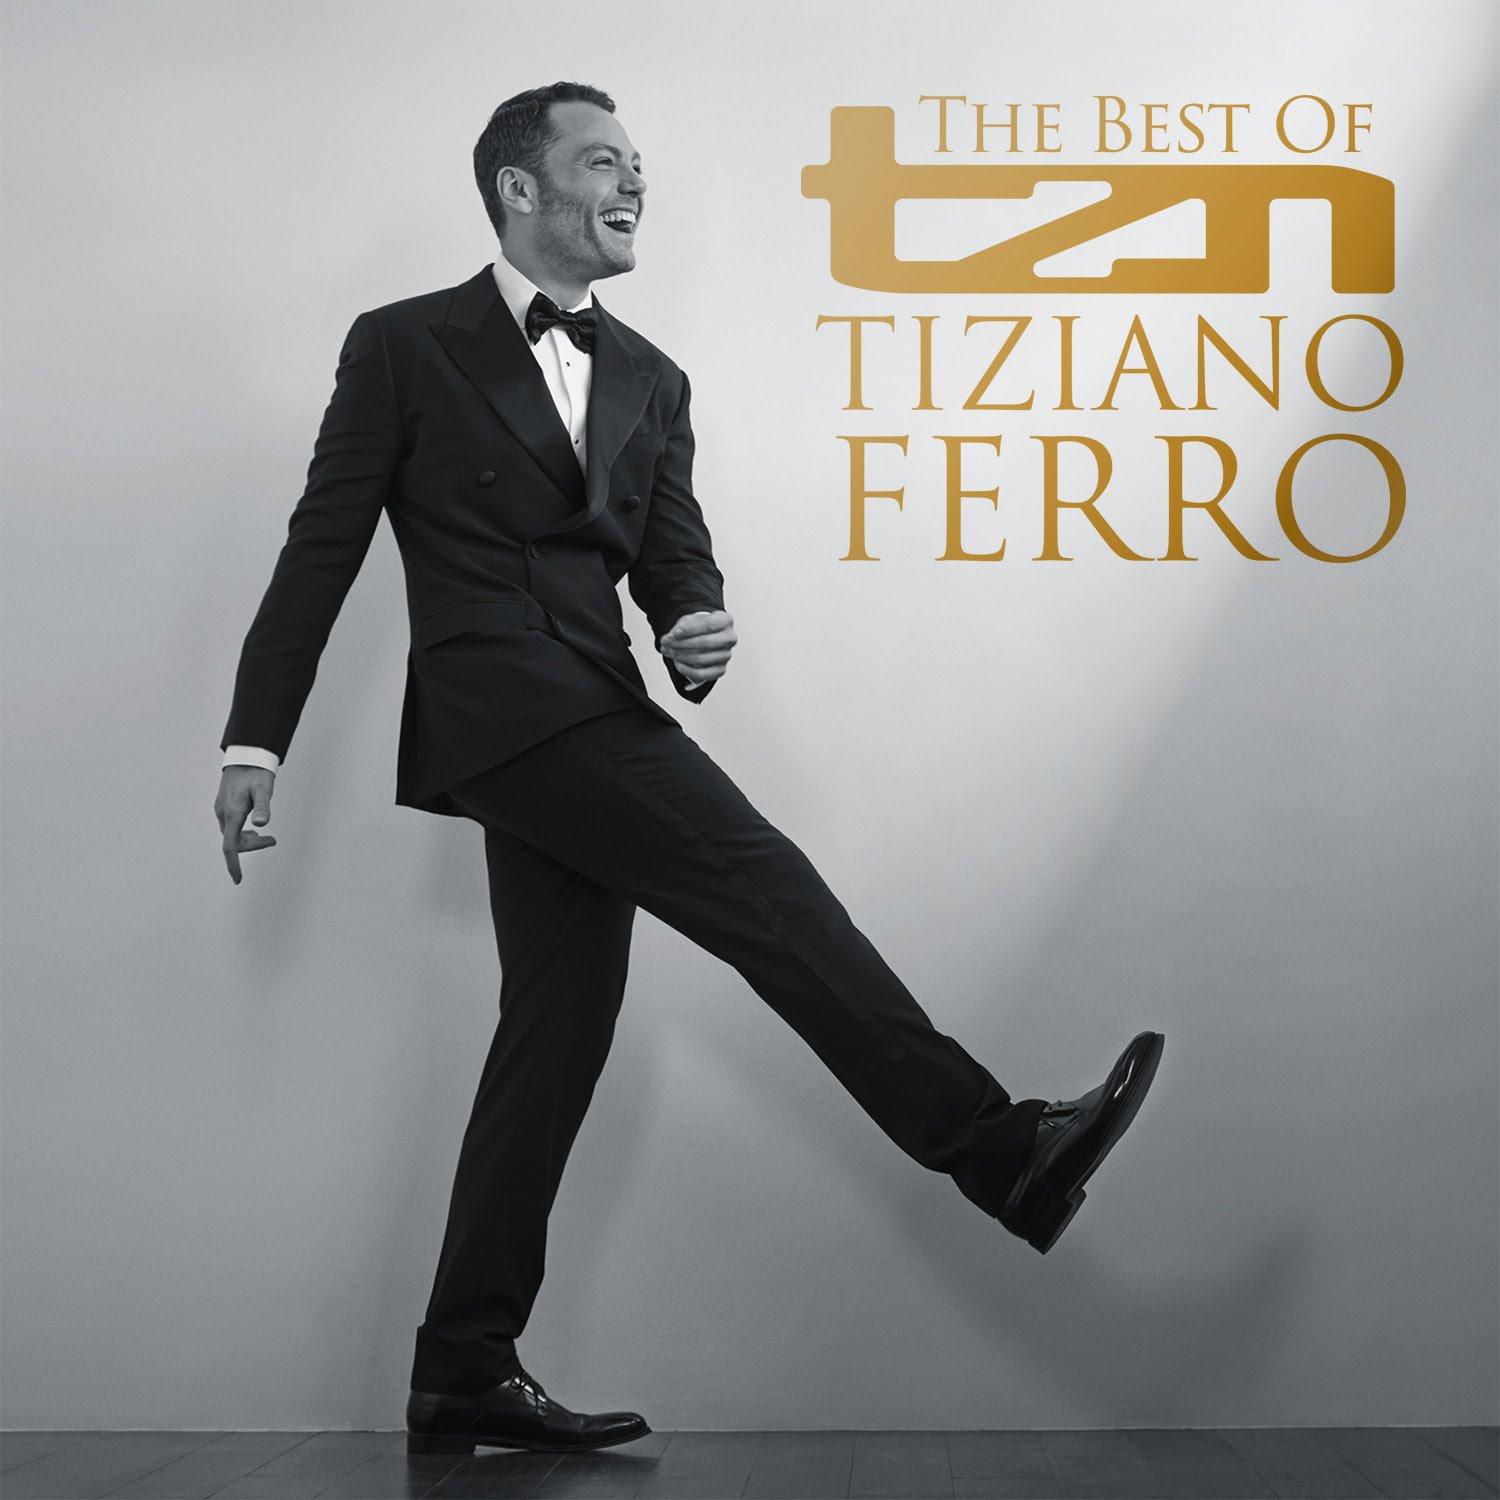 TZN. The best of Tiziano Ferro